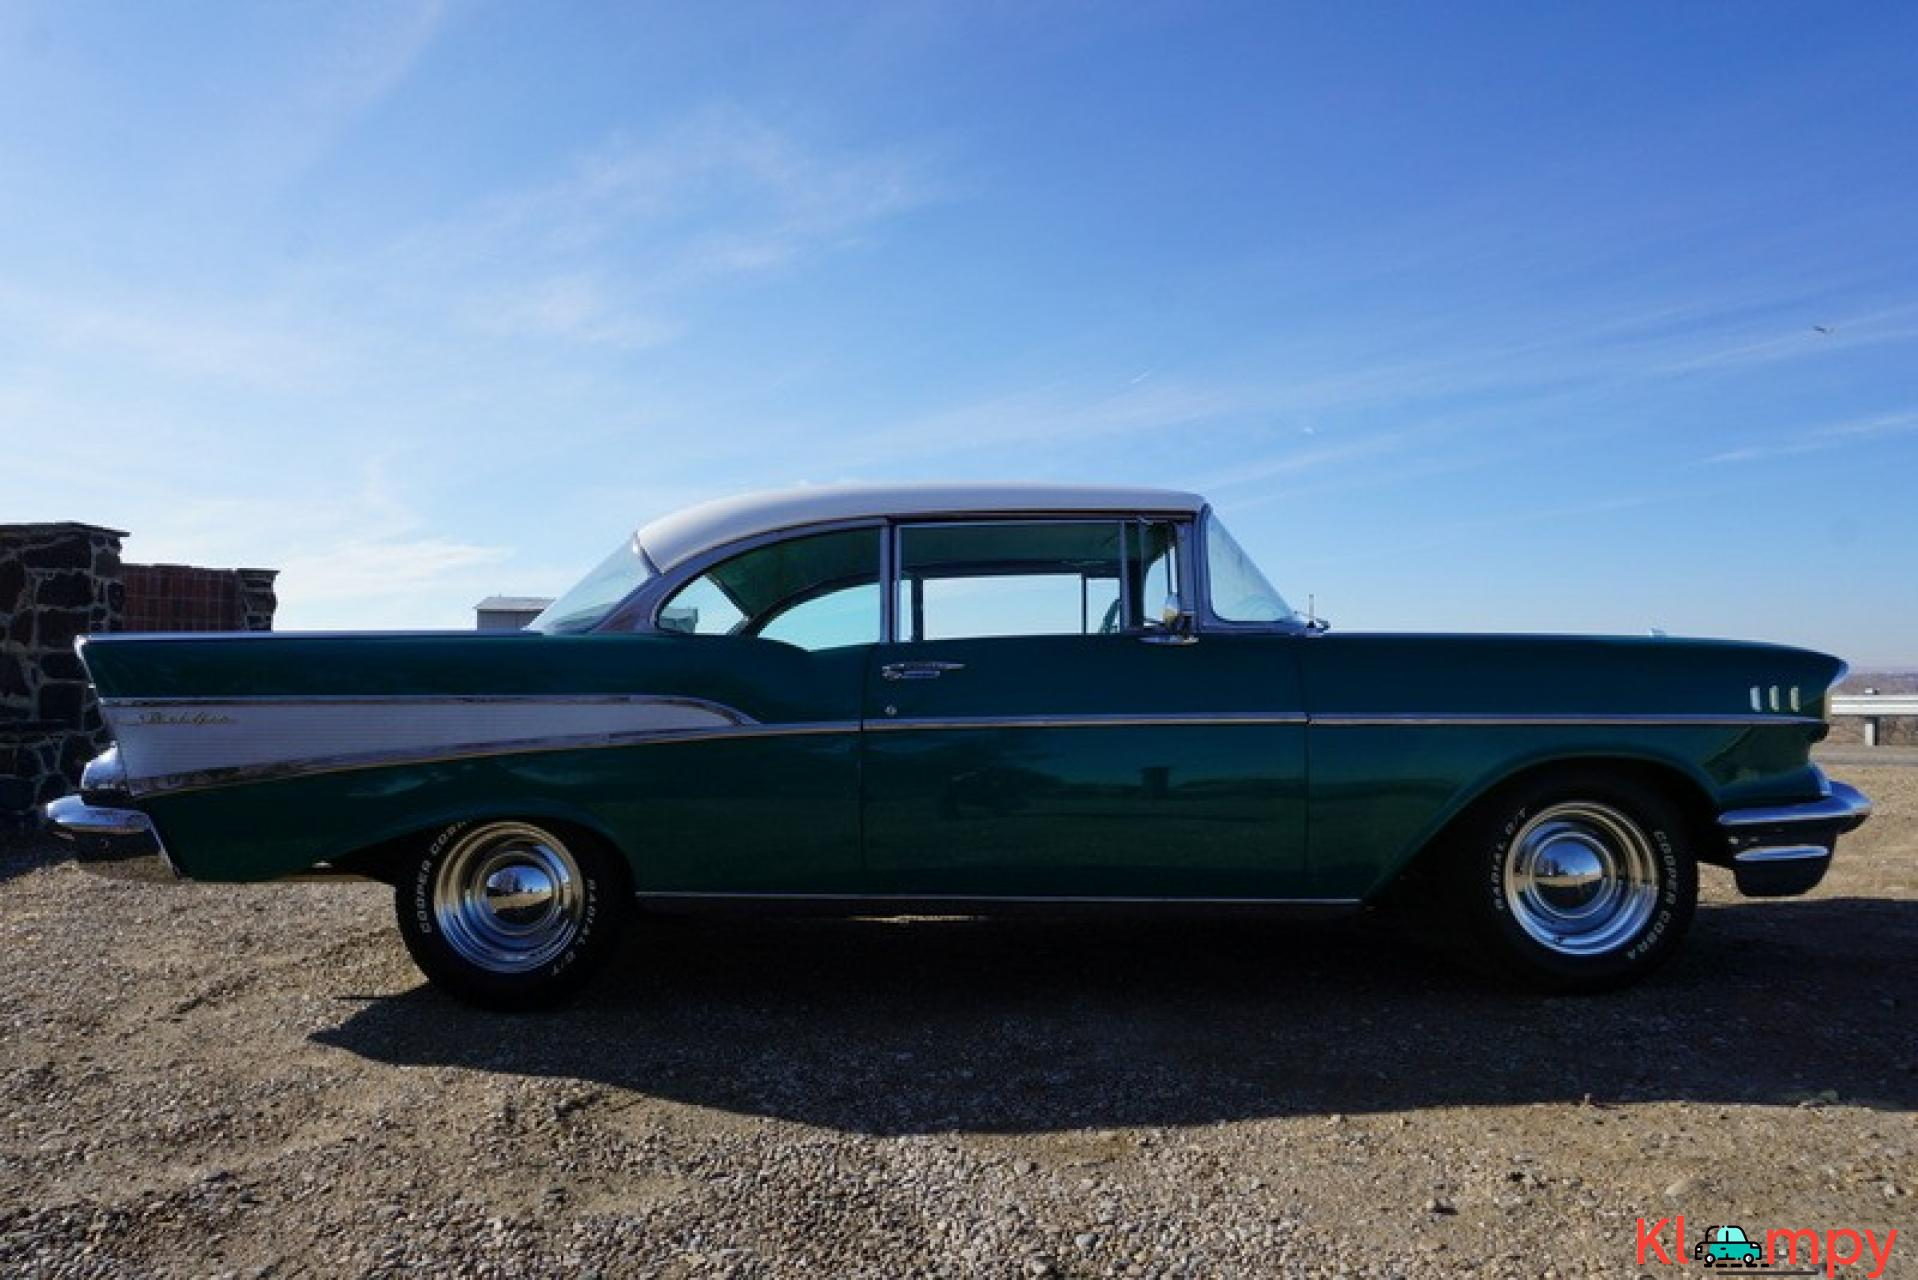 1957 Chevrolet Bel Air 150 210 Hardtop - 4/20